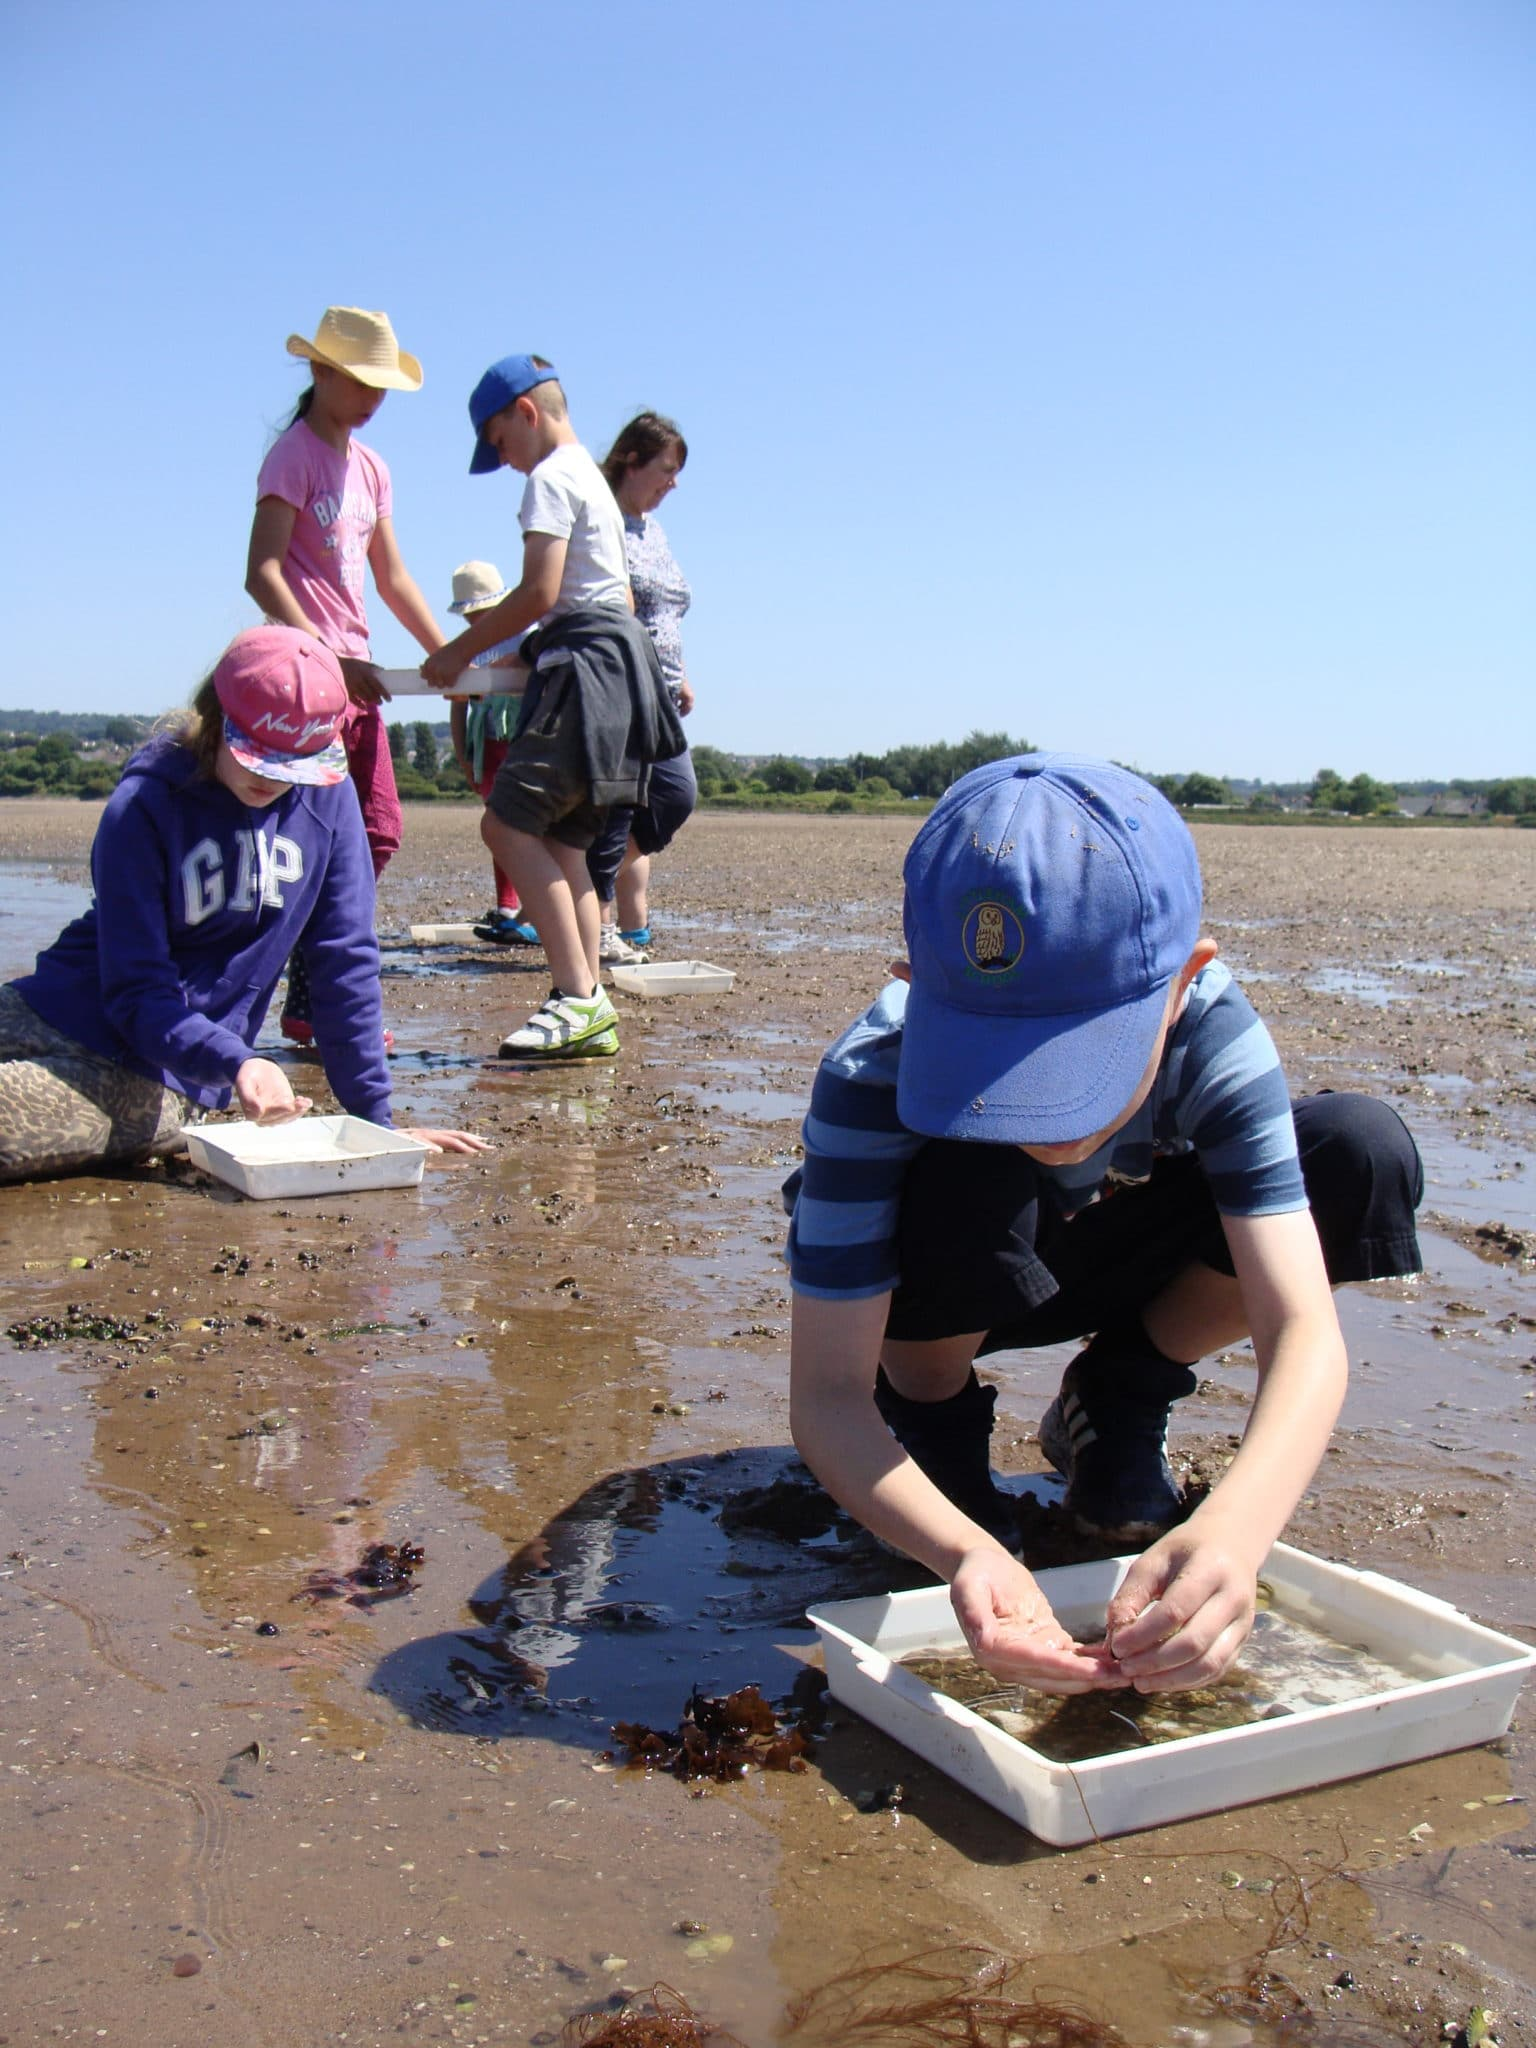 Image 6a: Outdoor education session at Exmouth LNR